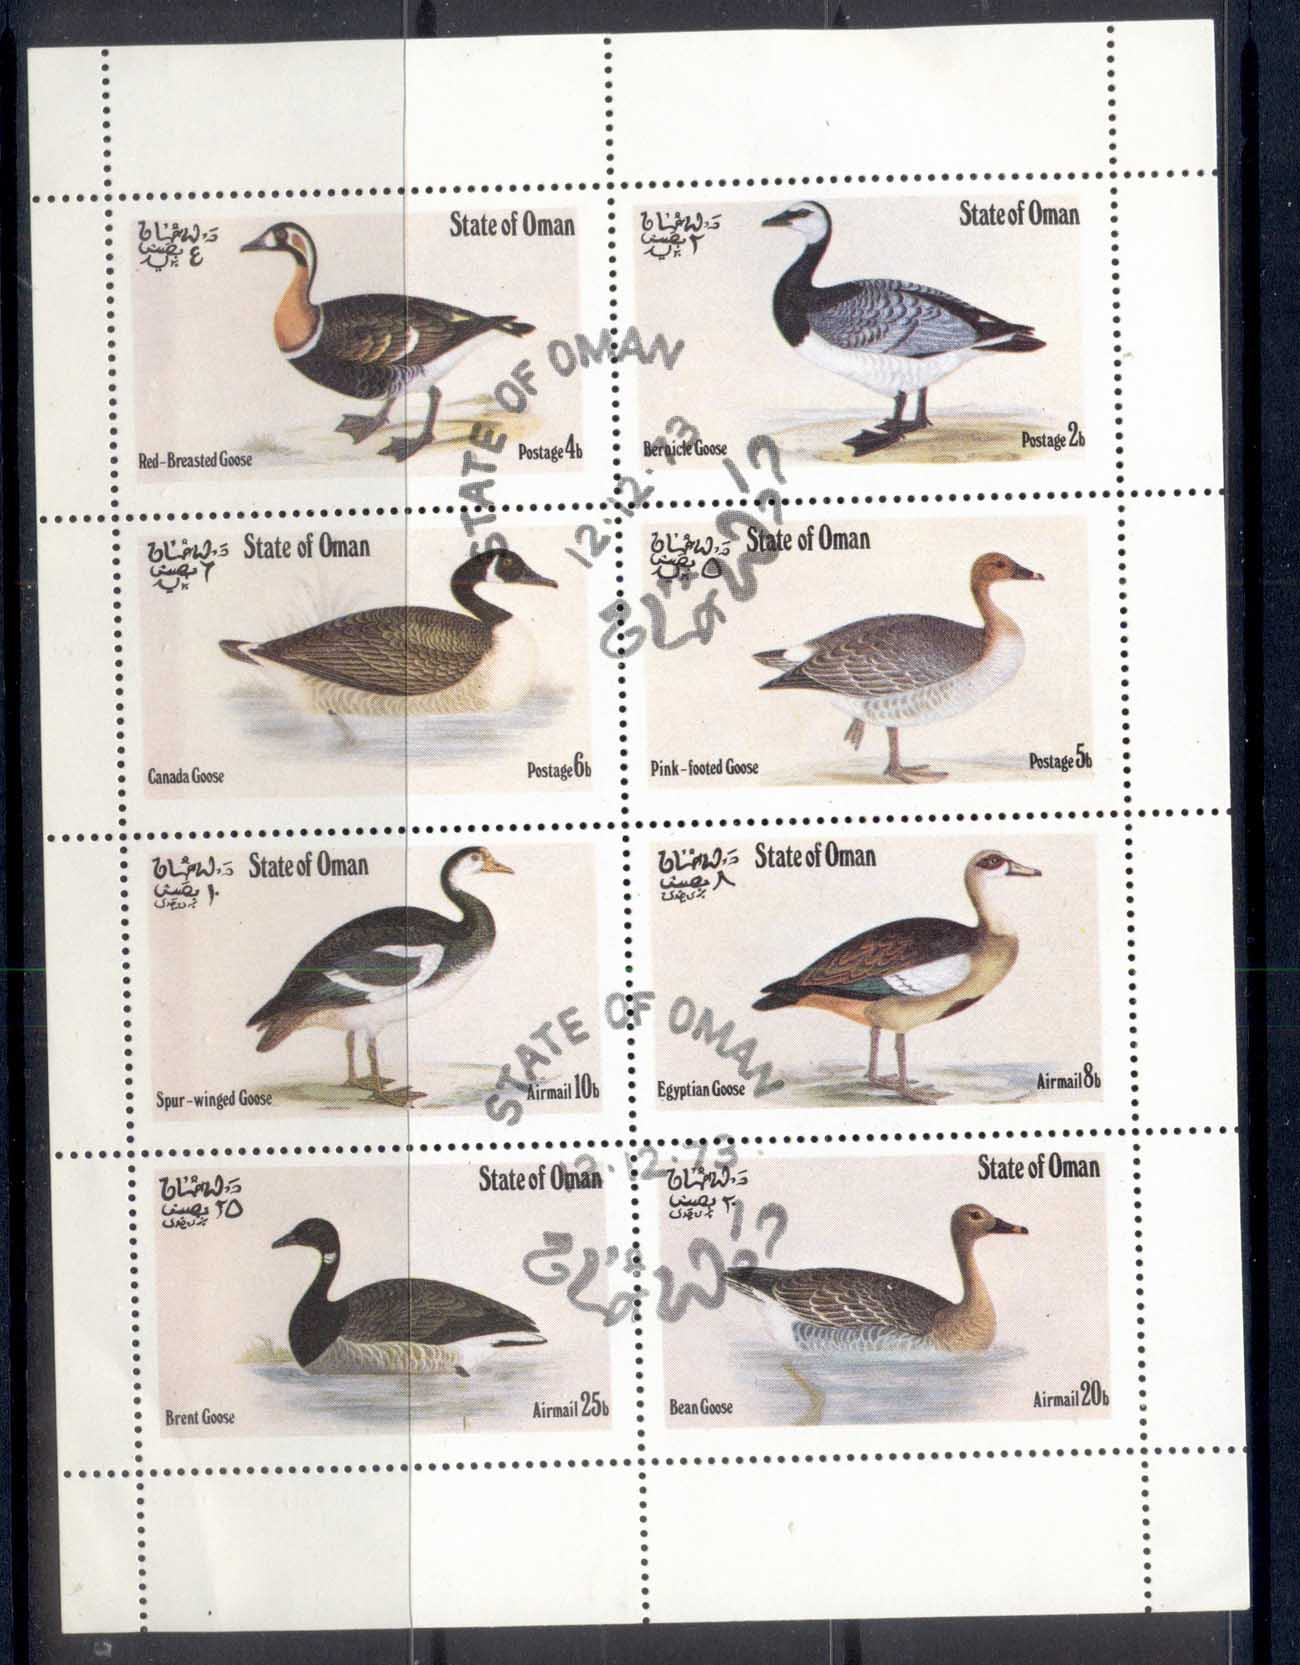 Oman State 1973 Birds, Ducks, Waterfowl sheetlet CTO